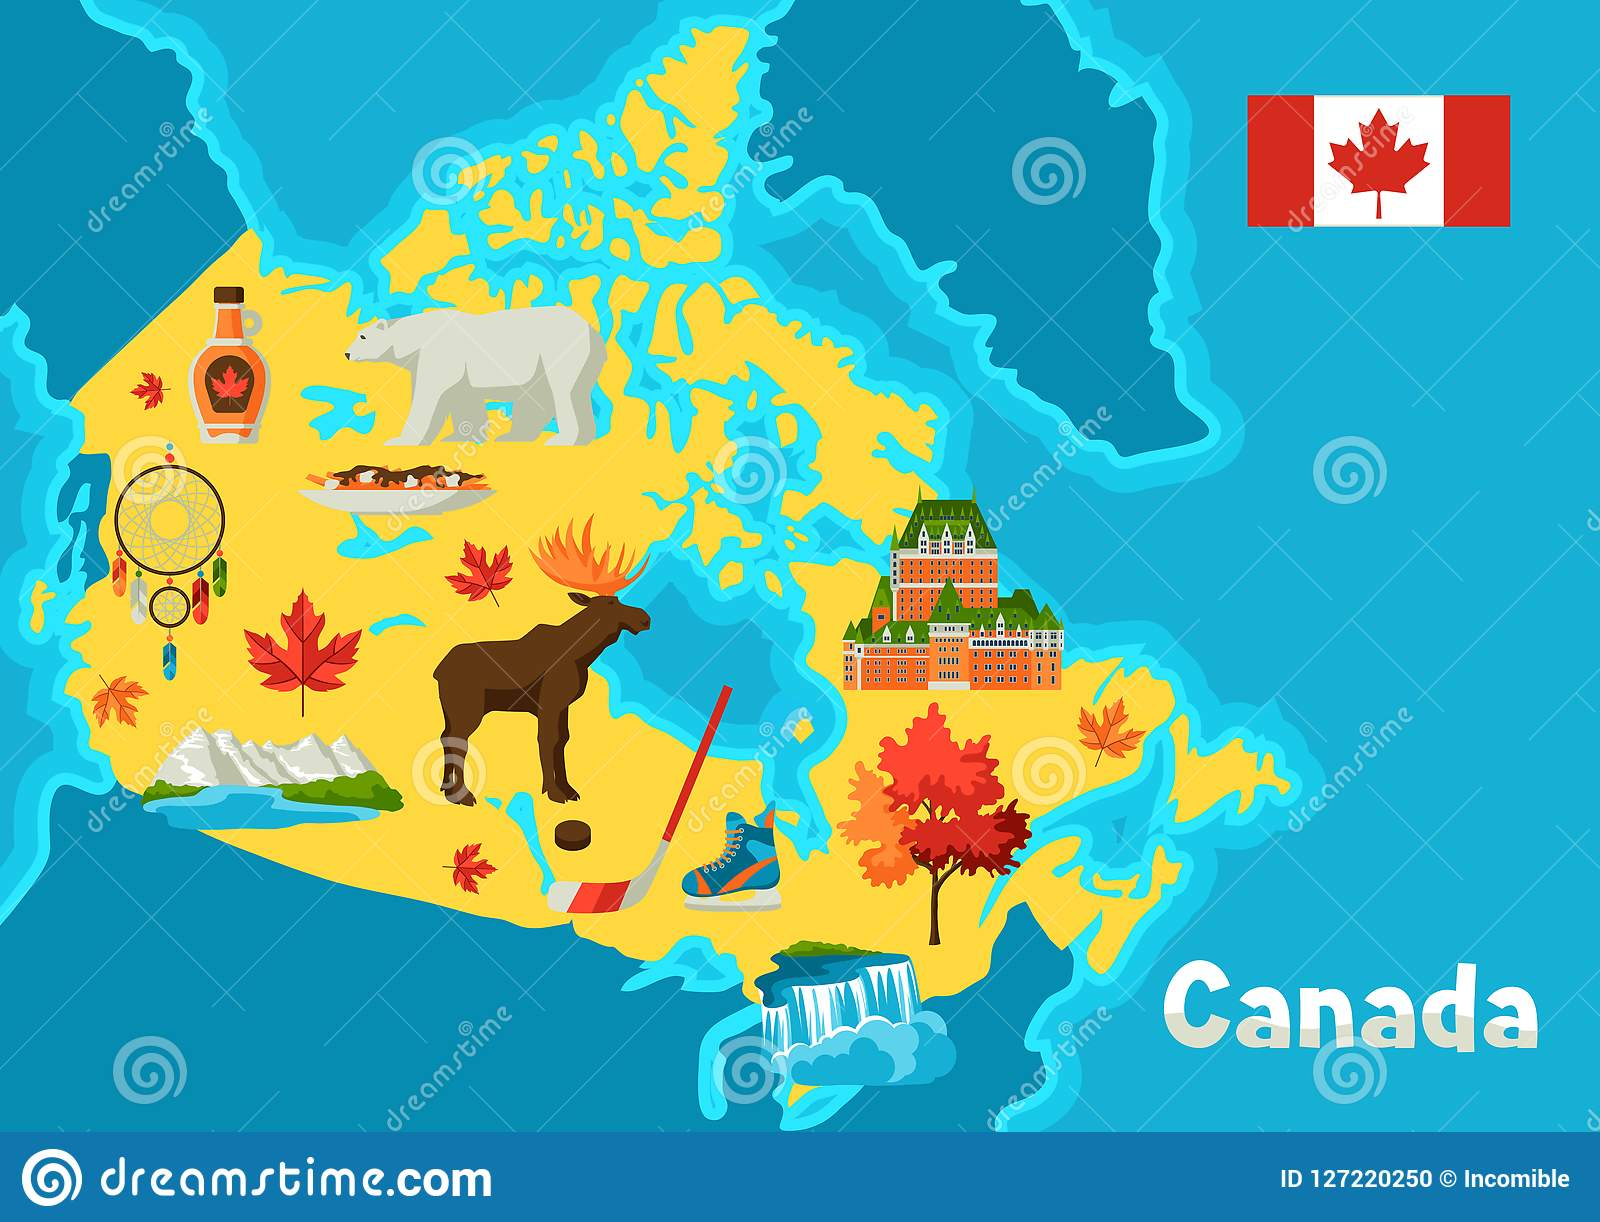 Map Of Canada Mountains.Illustration Of Canada Map Stock Vector Illustration Of